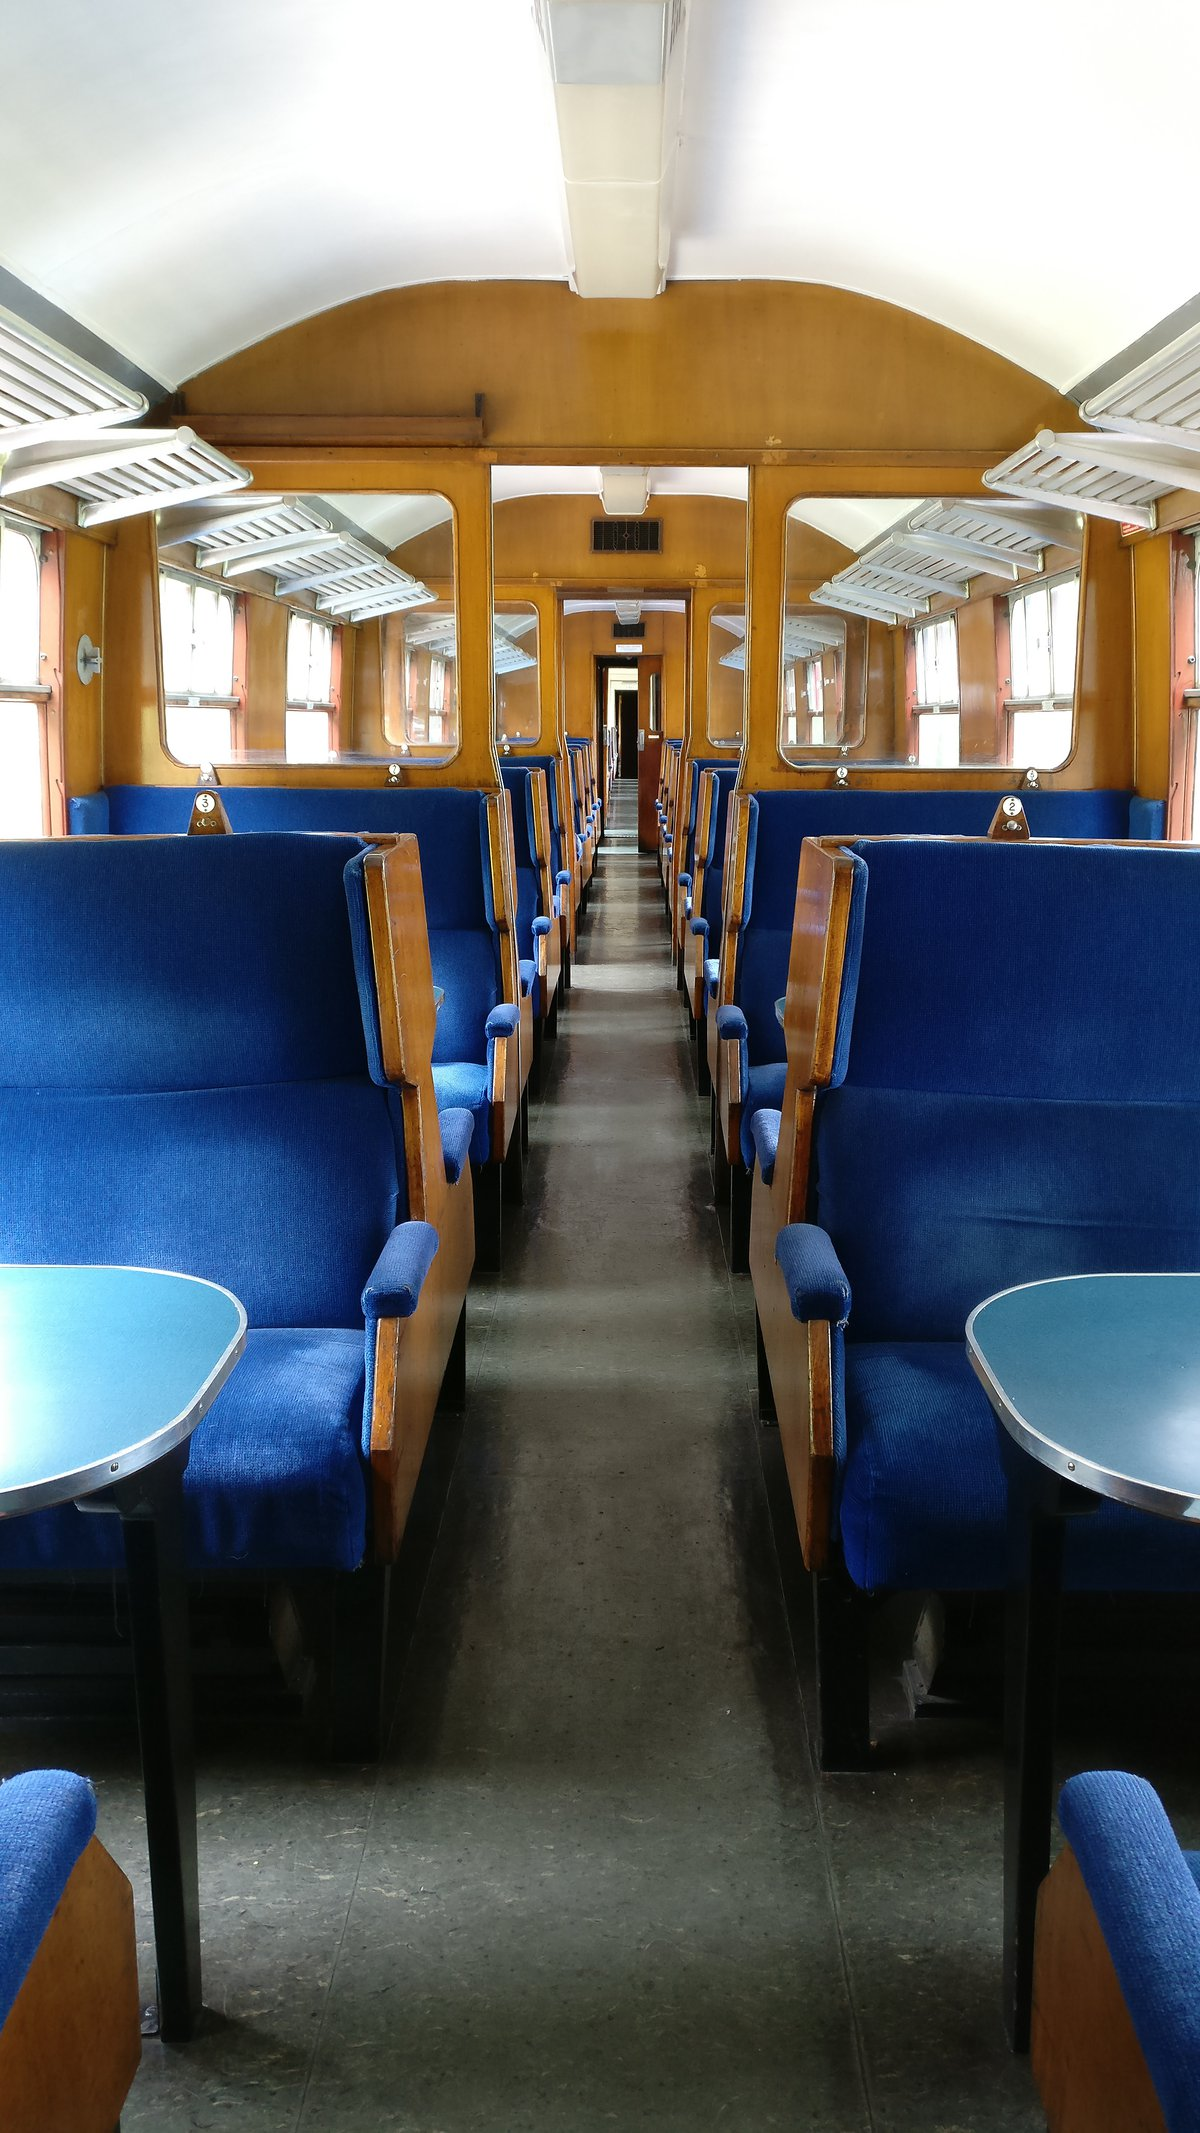 Inside old, open train carriage